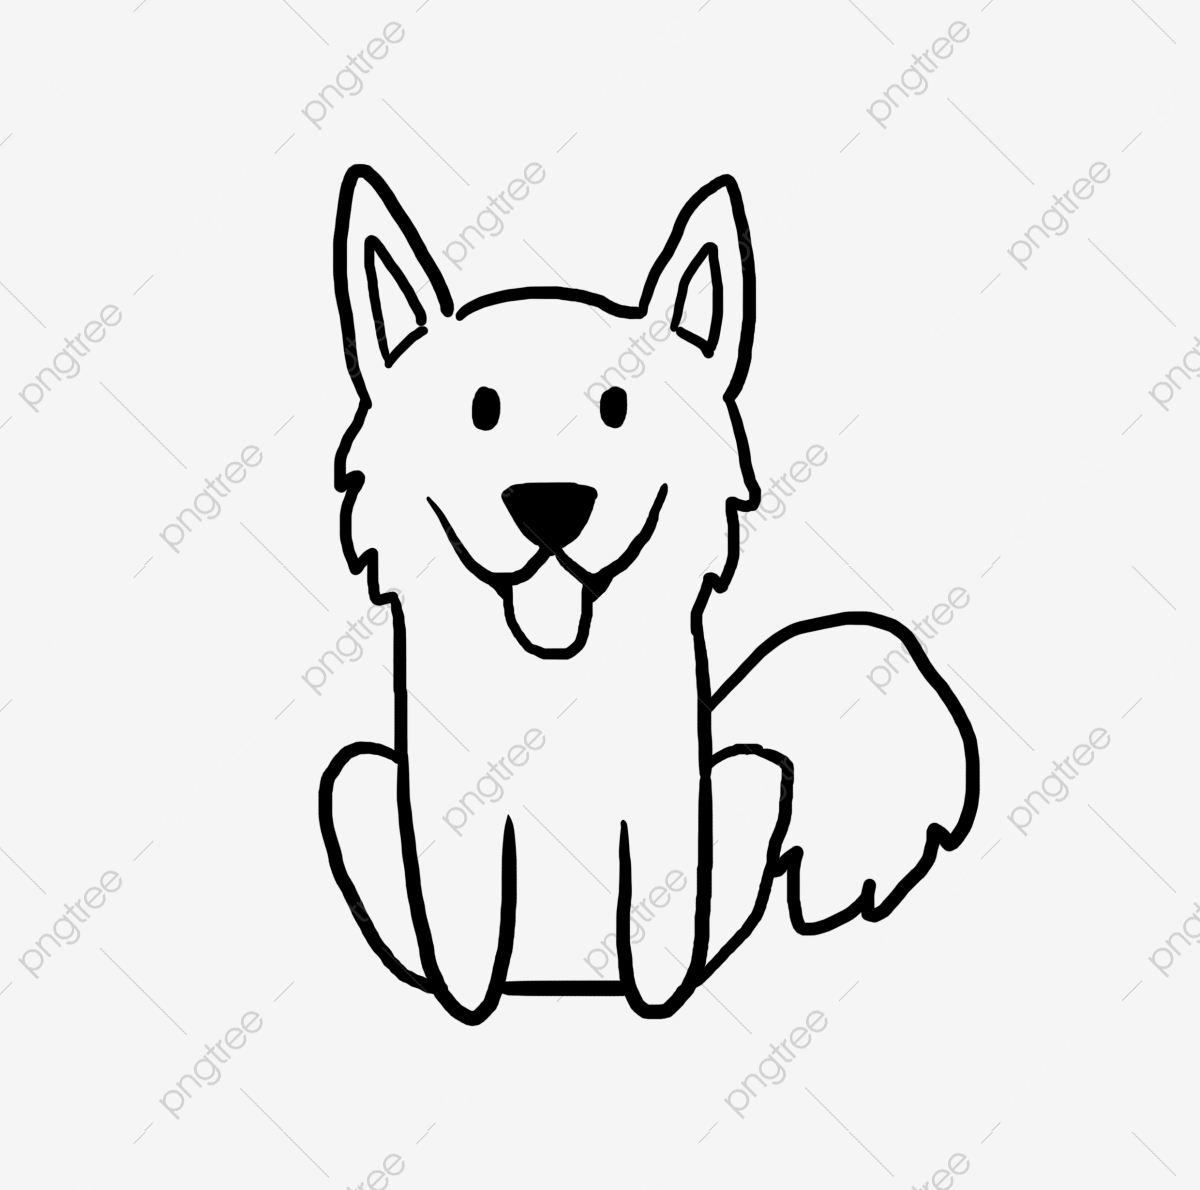 Cartoon Dog Png Images Vector And Psd Files Free Download On Pngtree